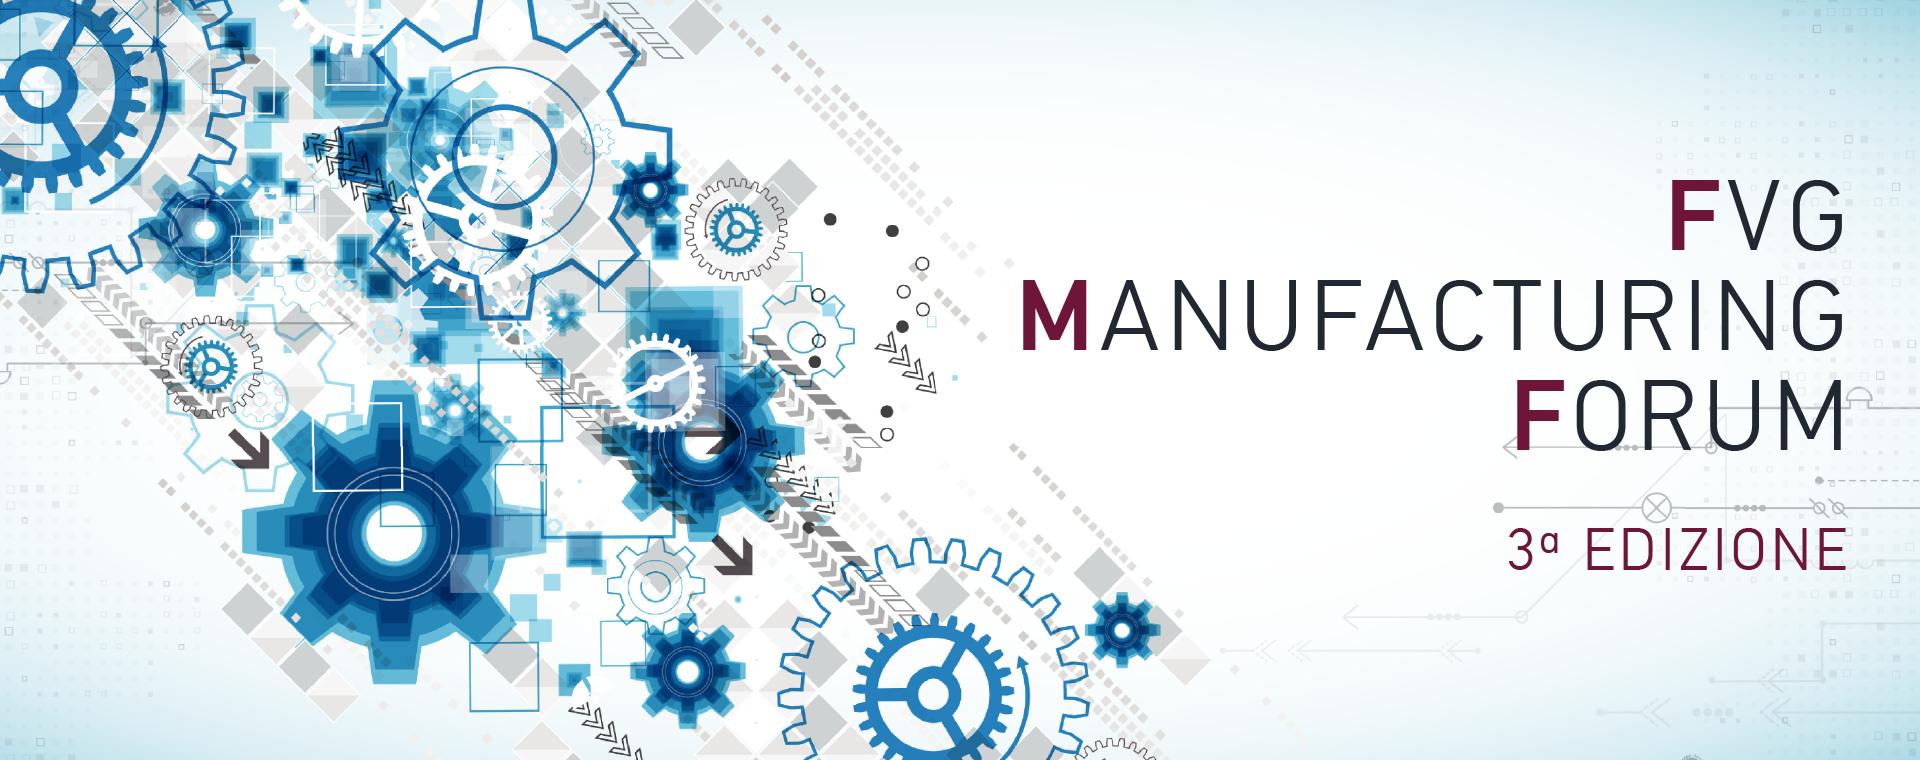 FVG Manufacturing Forum 2020